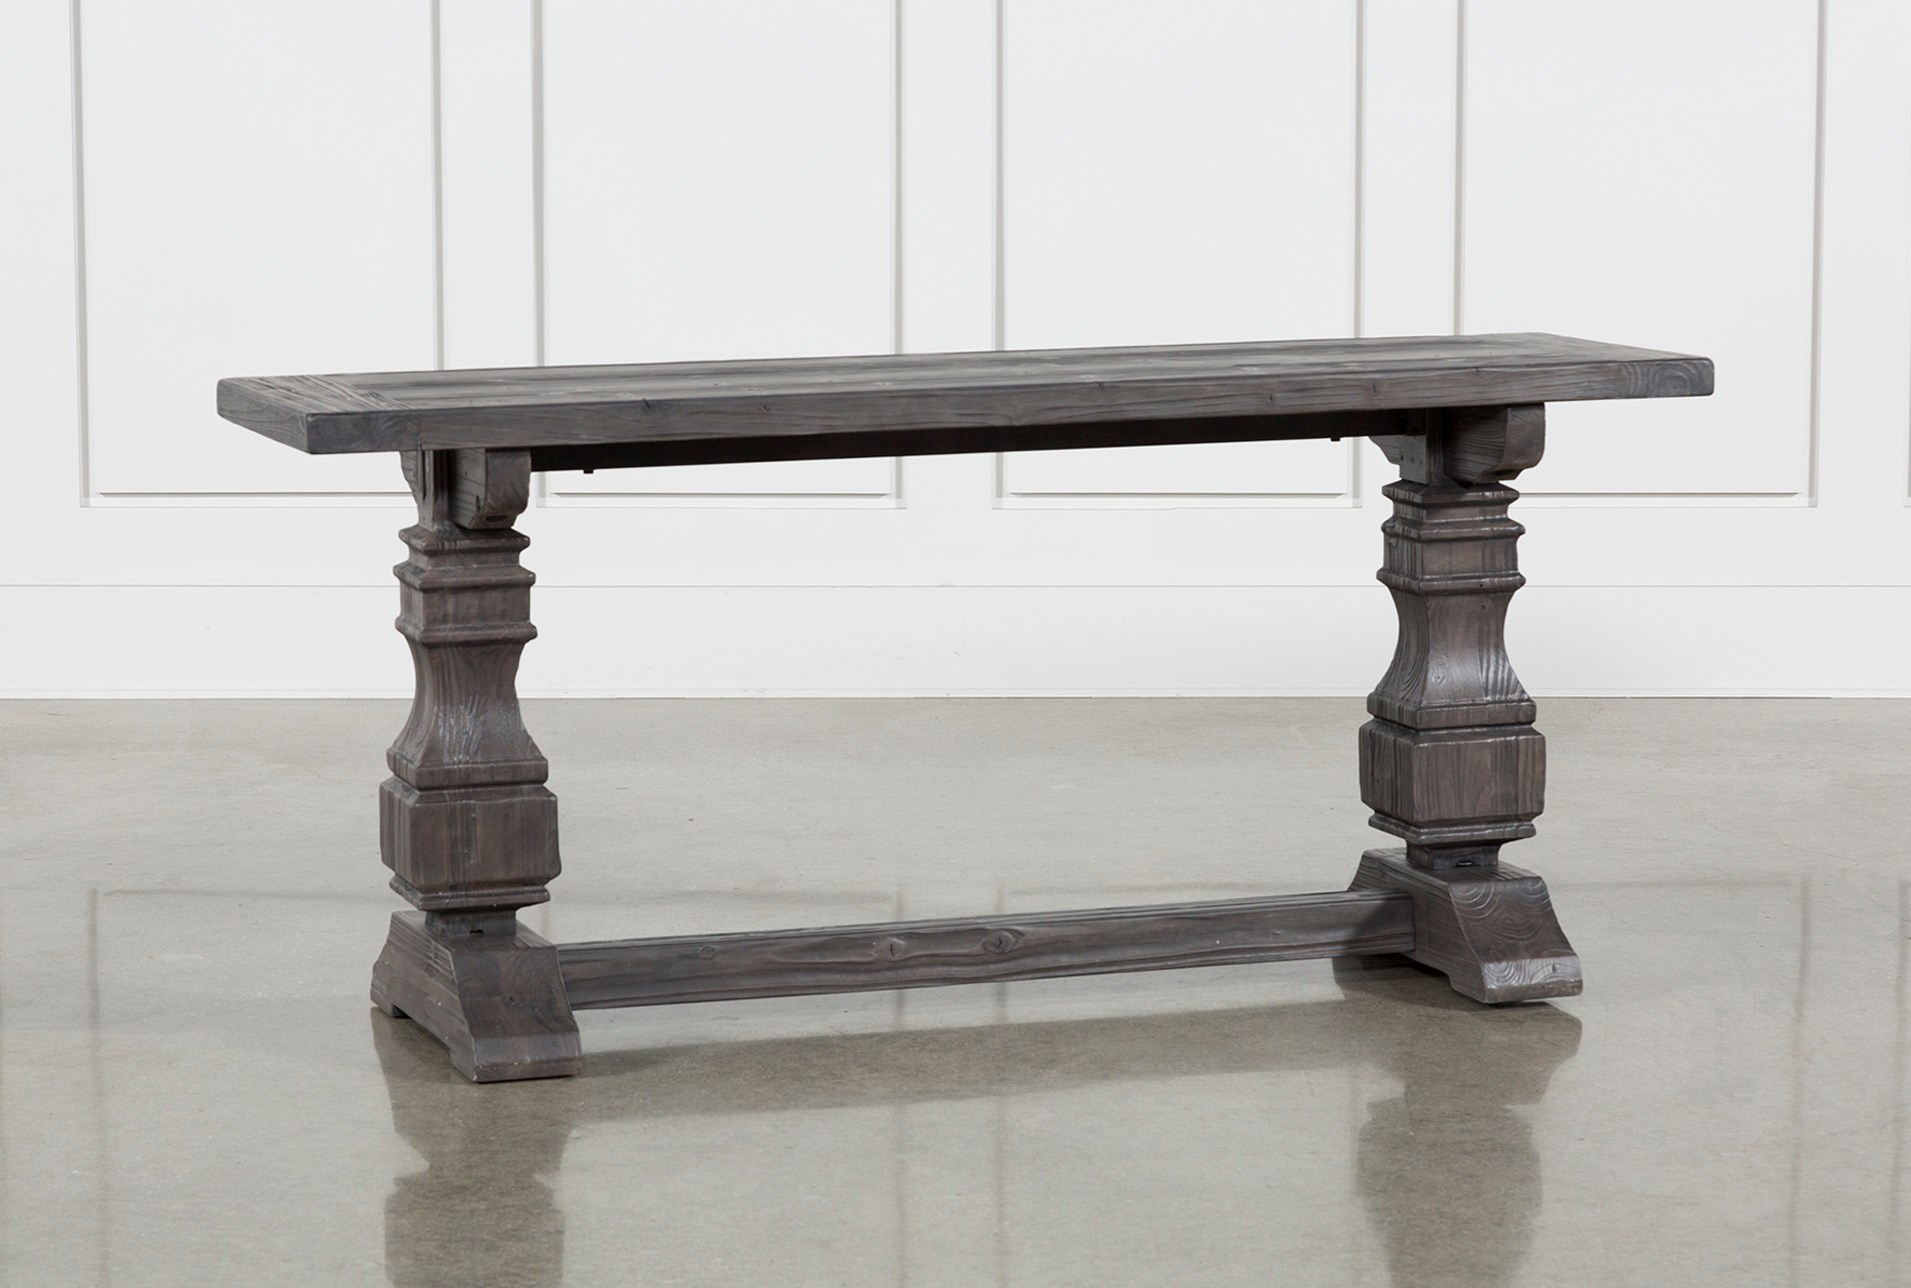 Norwood Sofa Table (Qty: 1) has been successfully added to your Cart.